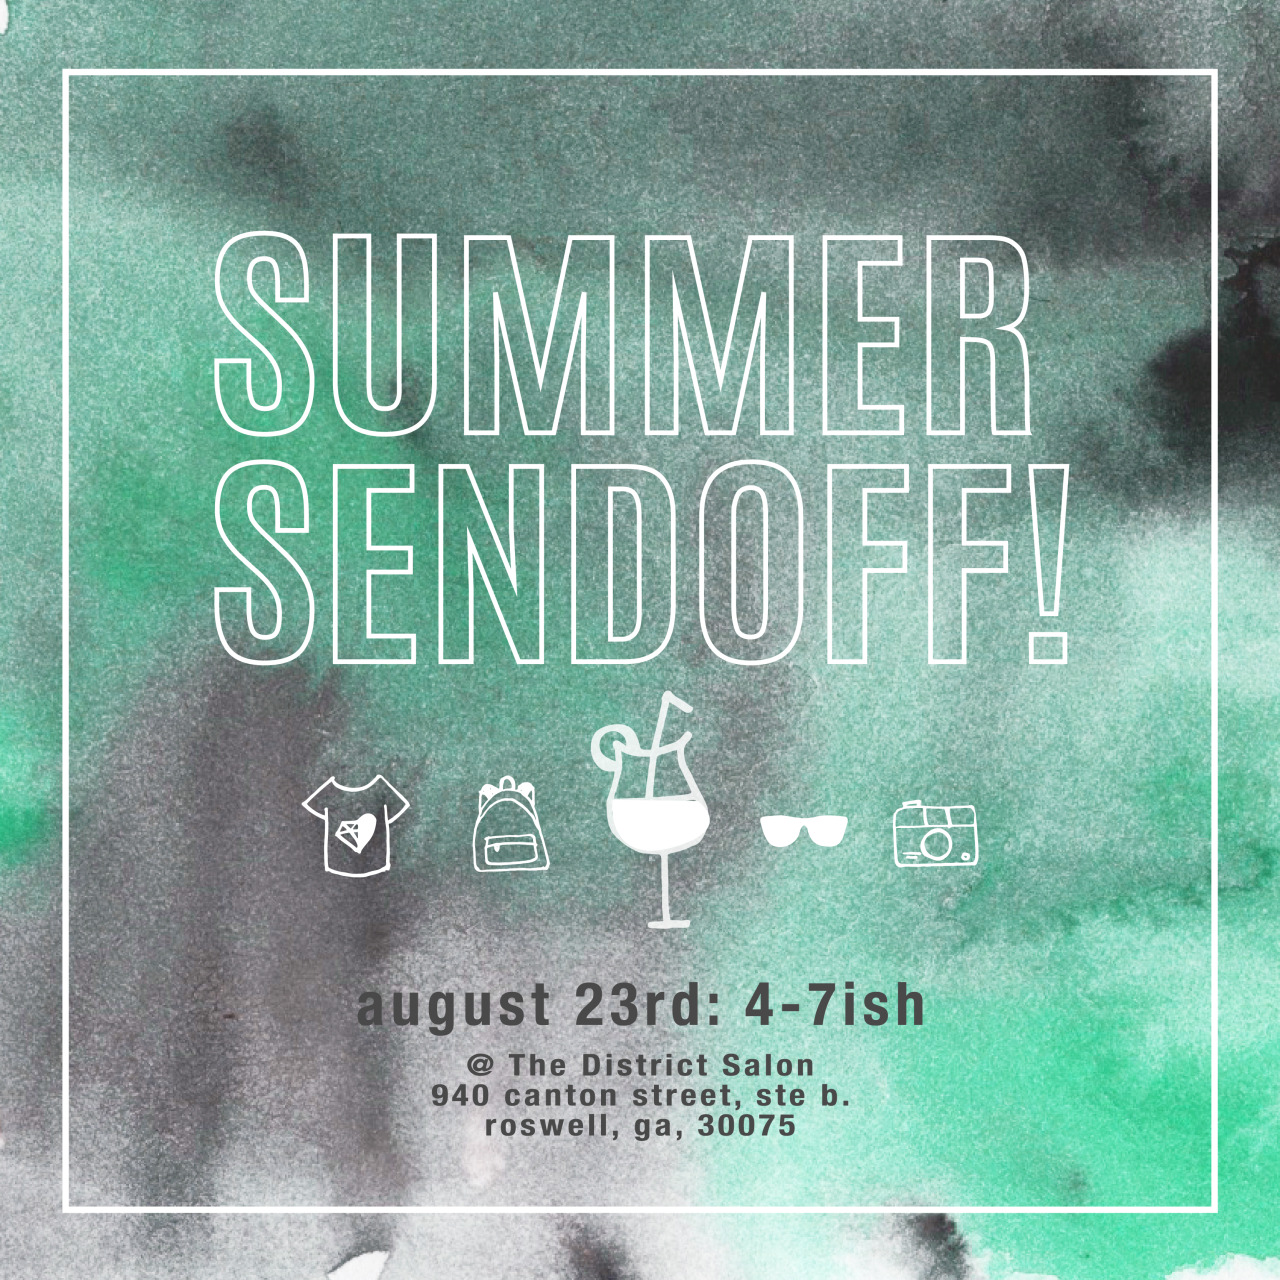 Vacations are ending, but that doesn't mean that celebrations have to! On  August 23rd , come to our  Summer Send-off  for free treats, free drinks, free pictures, and free beautiful people to love on!   Also, there will be a   FREE GIVEAWAY   of one of our brand new backpacks filled with goodies from local Atlantans that want to help you get through your journey into fall!      So get your beautiful behind over to  The District  and celebrate new beginnings, new SWL delights, and new friends!